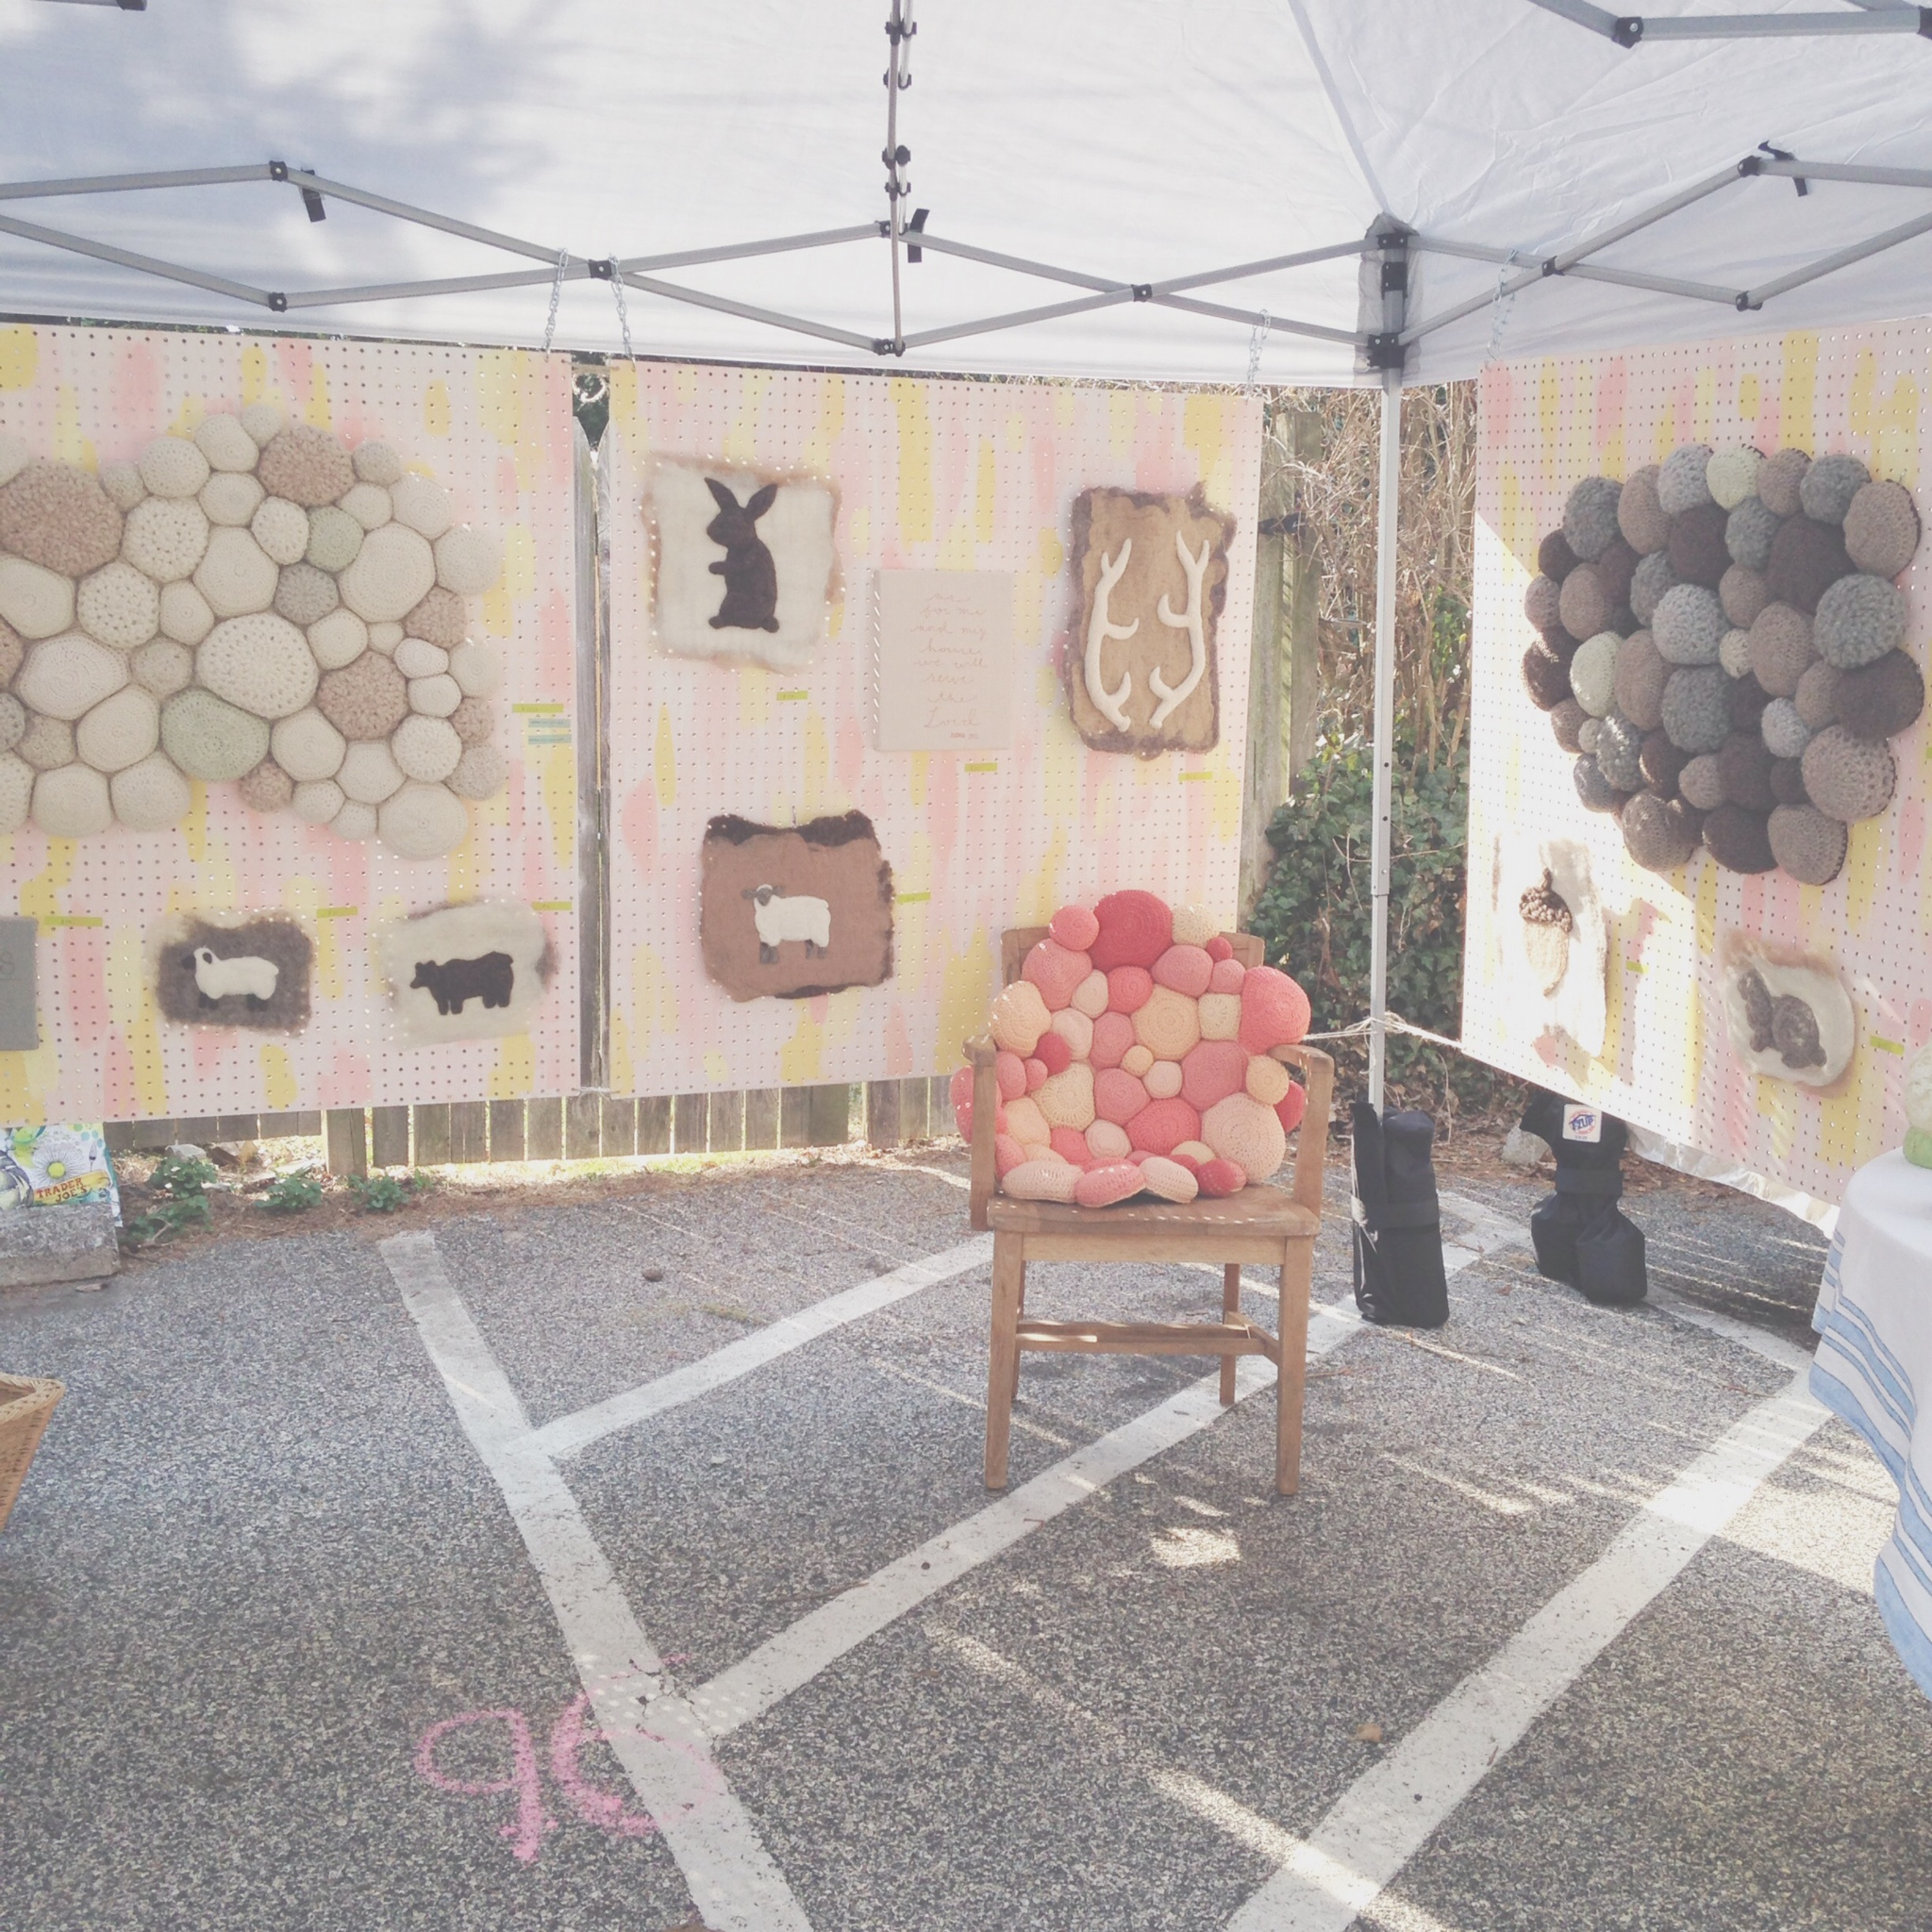 Ernie and Irene's booth at Clover Market Chestnut Hill 2014